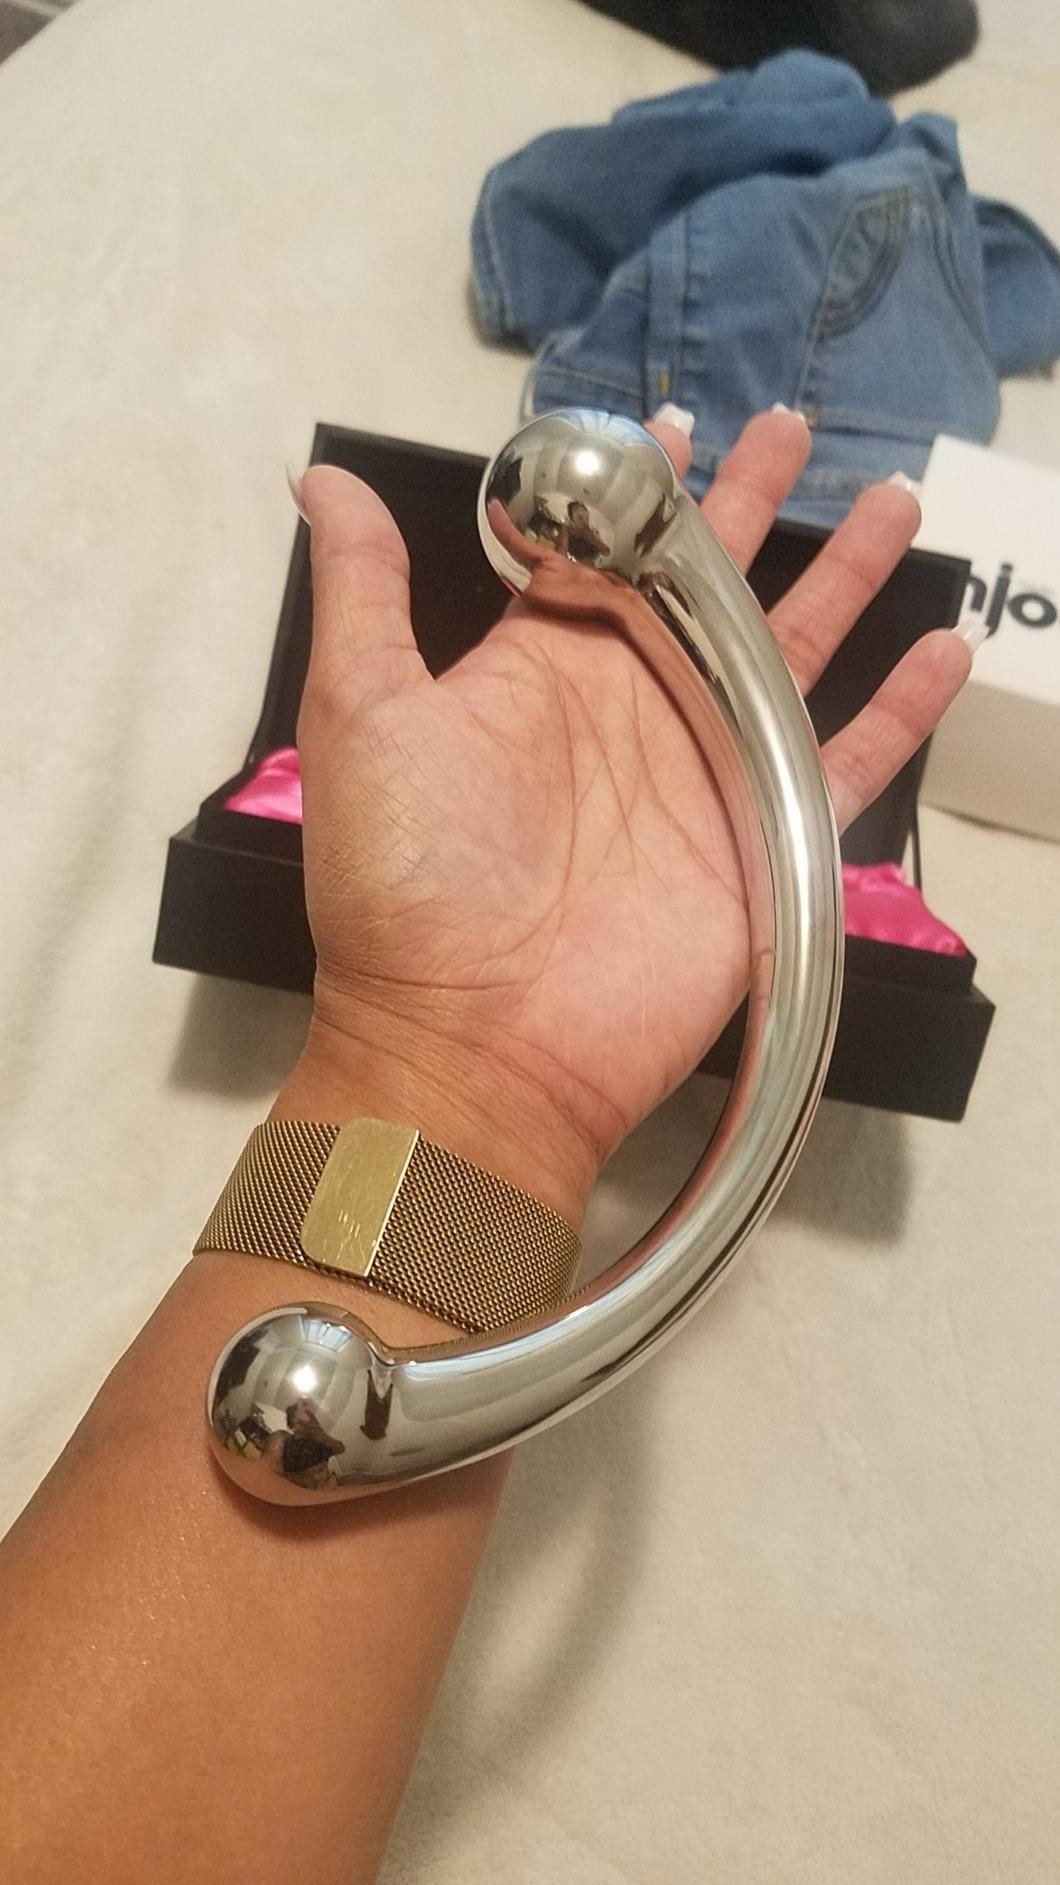 Model holding stainless steel dildo along palm and forearm